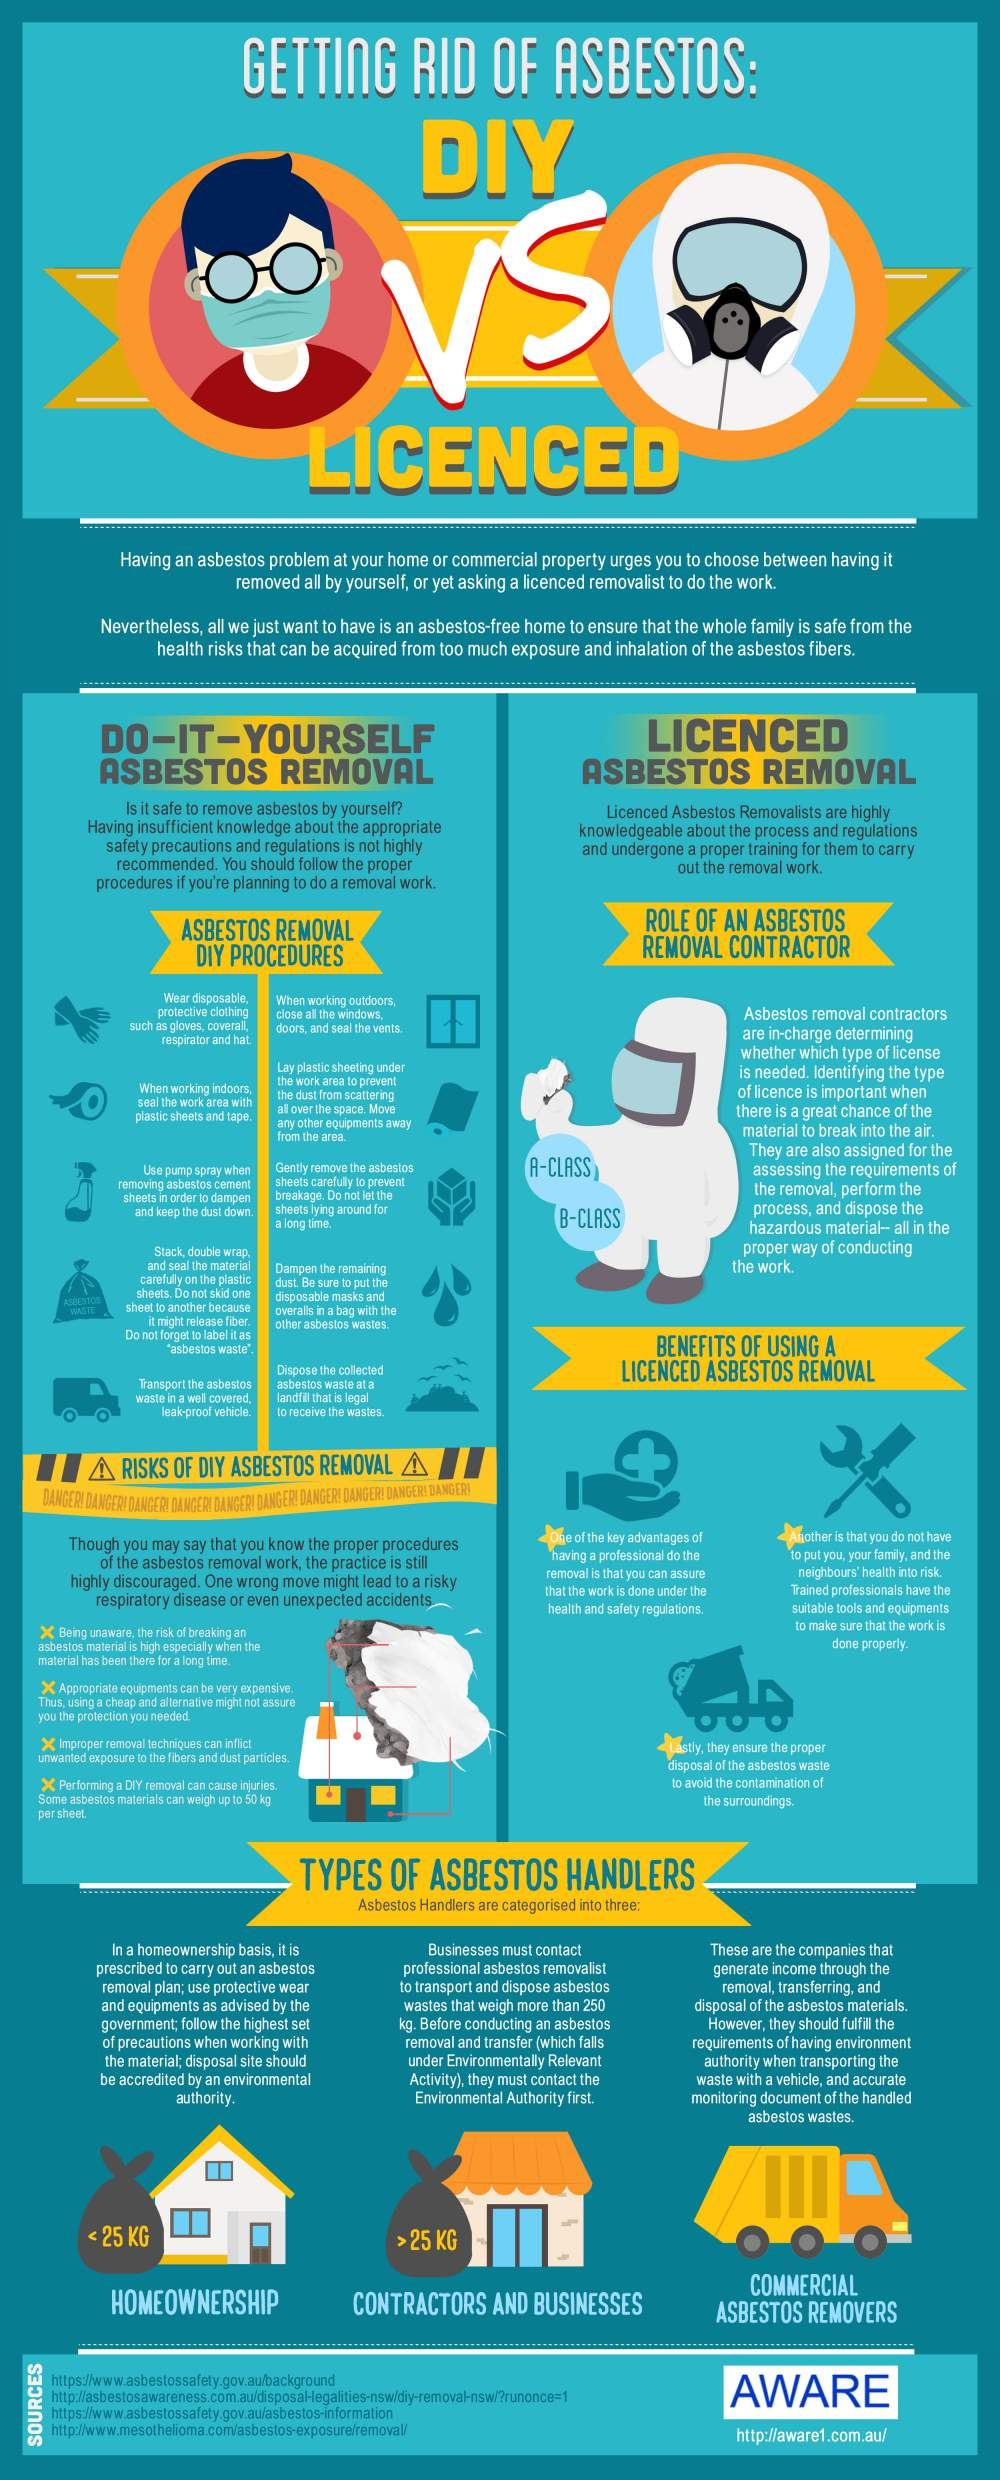 Getting rid of asbestos diy vs licenced infographic portal getting rid of asbestos solutioingenieria Images